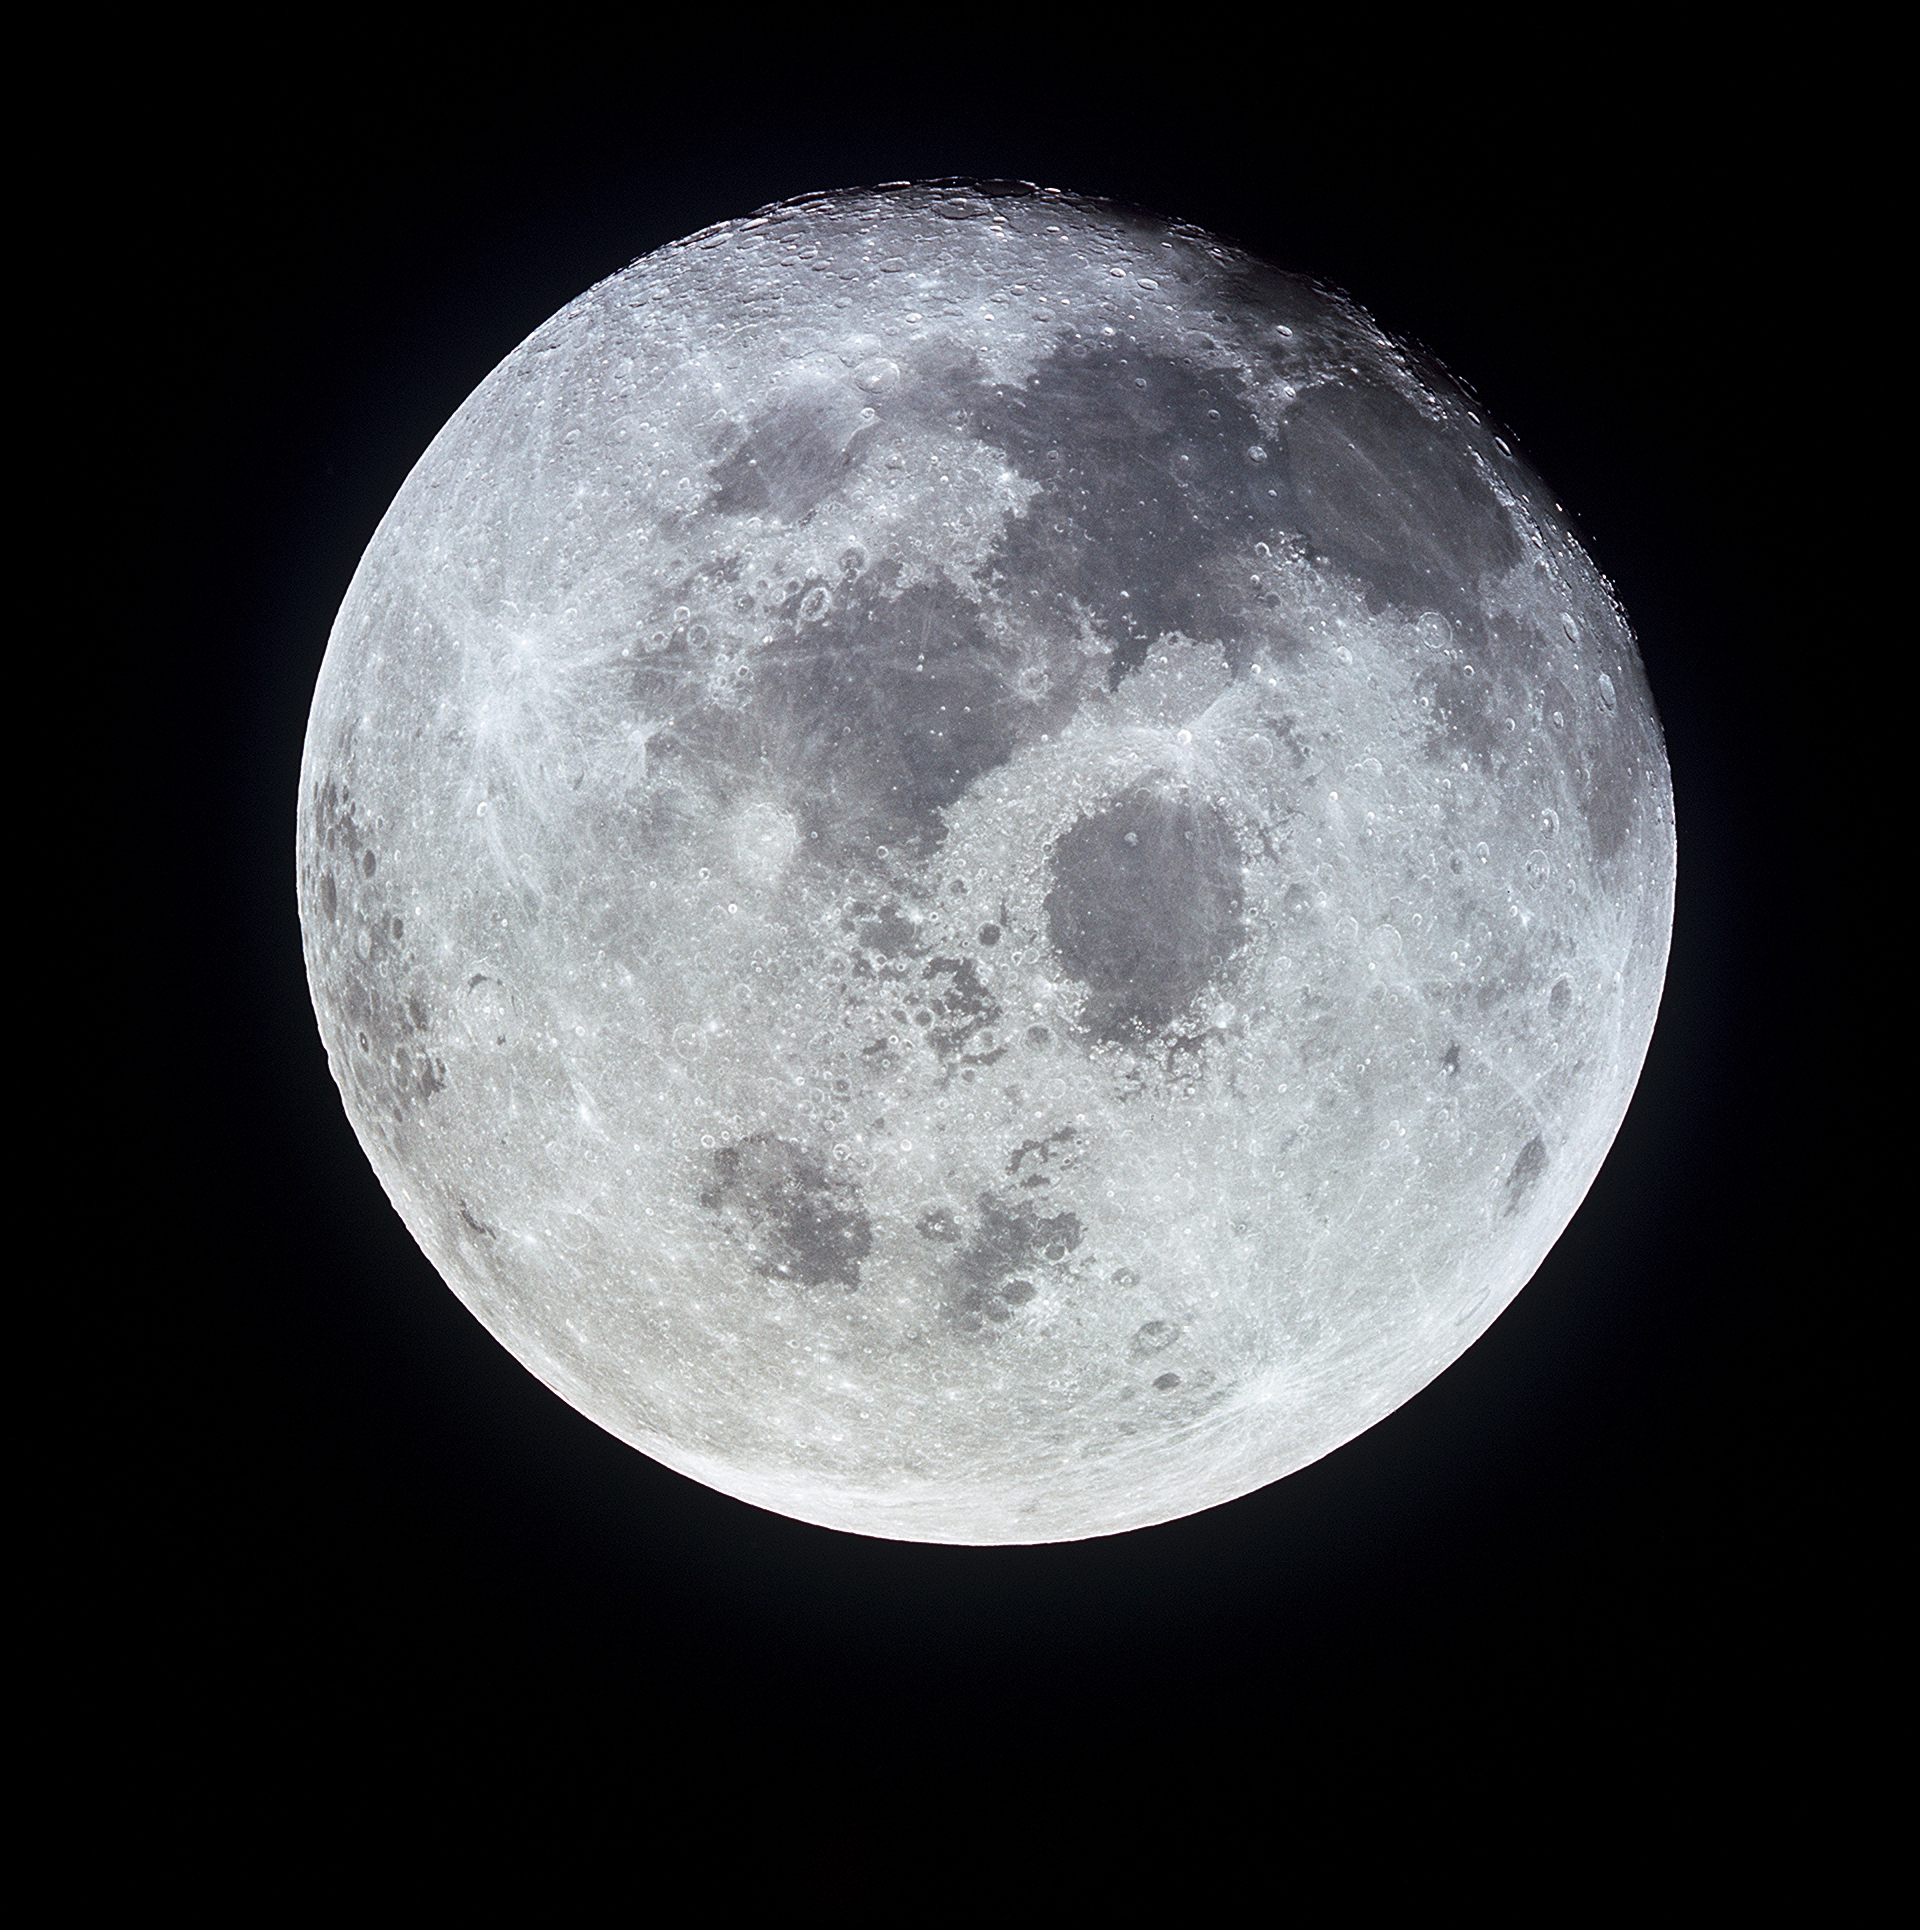 Full moon photographed from the Apollo 11 spacecraft. Image credit NASA